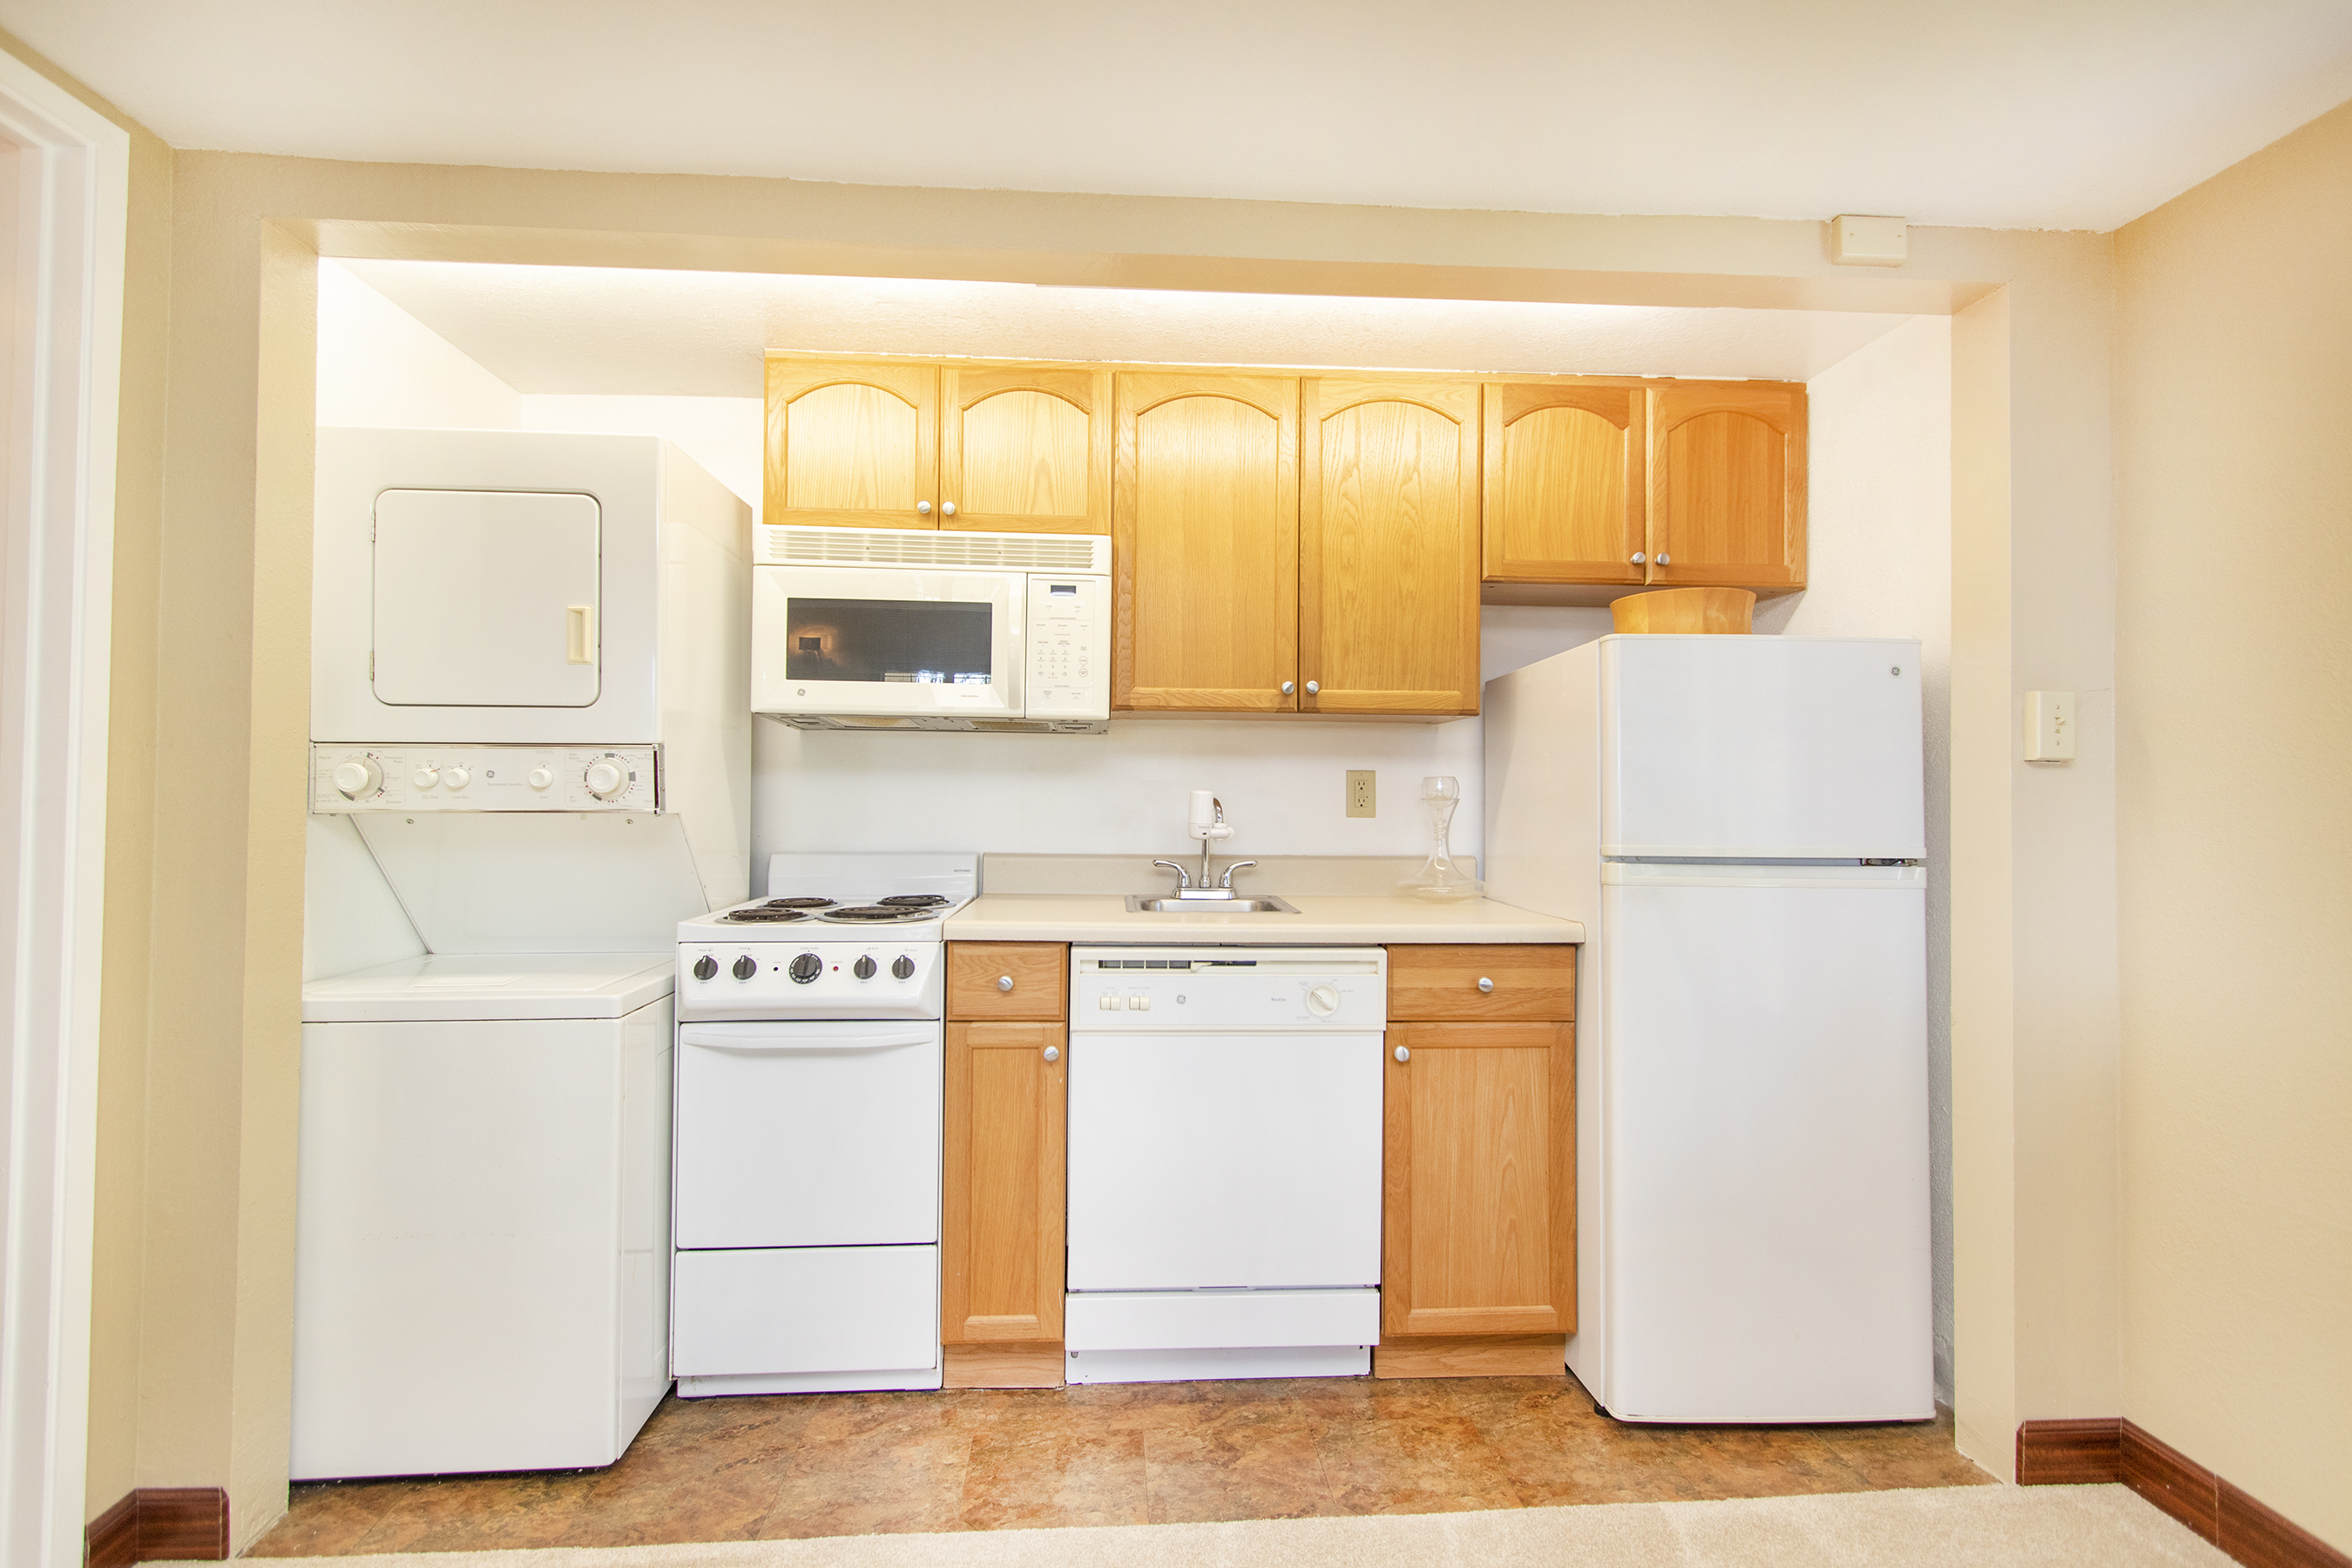 Downstairs kitchen at 3663 Woodlawn Drive